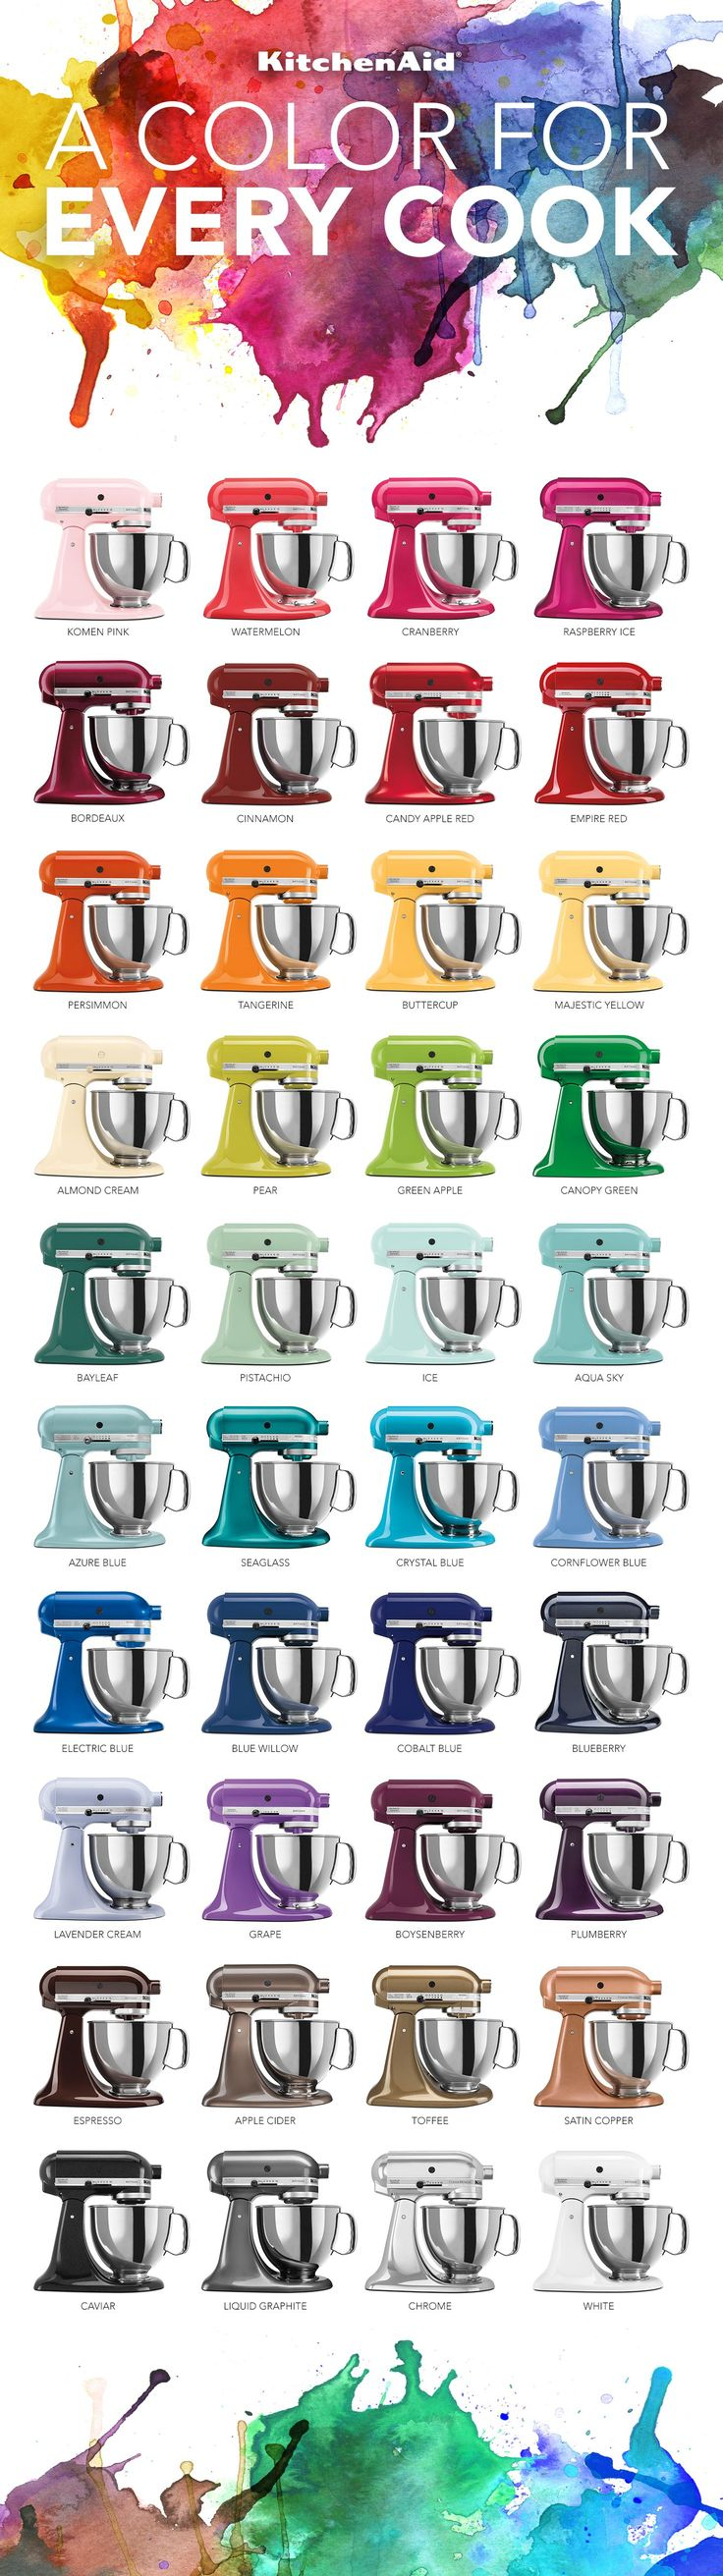 The Colorful World of KitchenAid® Stand Mixers | An Infographic #KitchenAid #Infographic #StandMixer Silver to march others